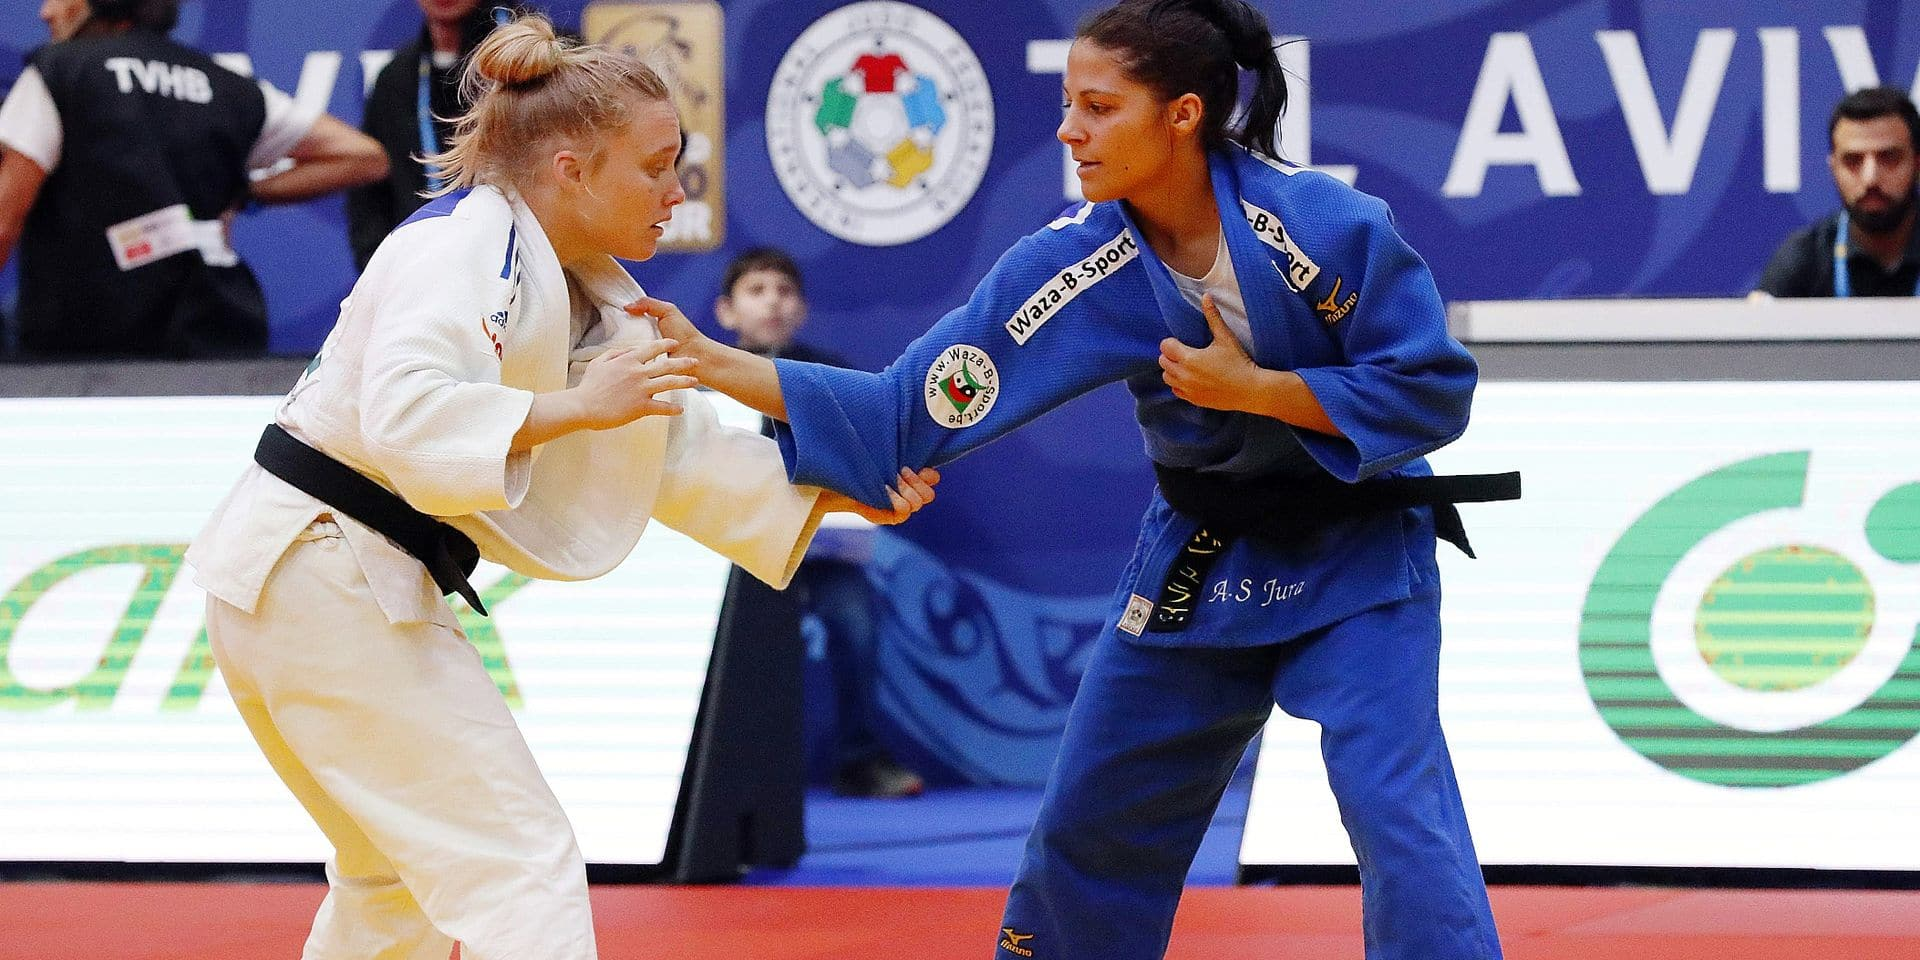 Israel's Tamar Malca (white) competes against Belgium's Anne-Sophie Jura during their women's under 48kg match at the the Tel Aviv Grand Prix 2019 on January 24, 2019, in the Israeli coastal city. (Photo by JACK GUEZ / AFP)